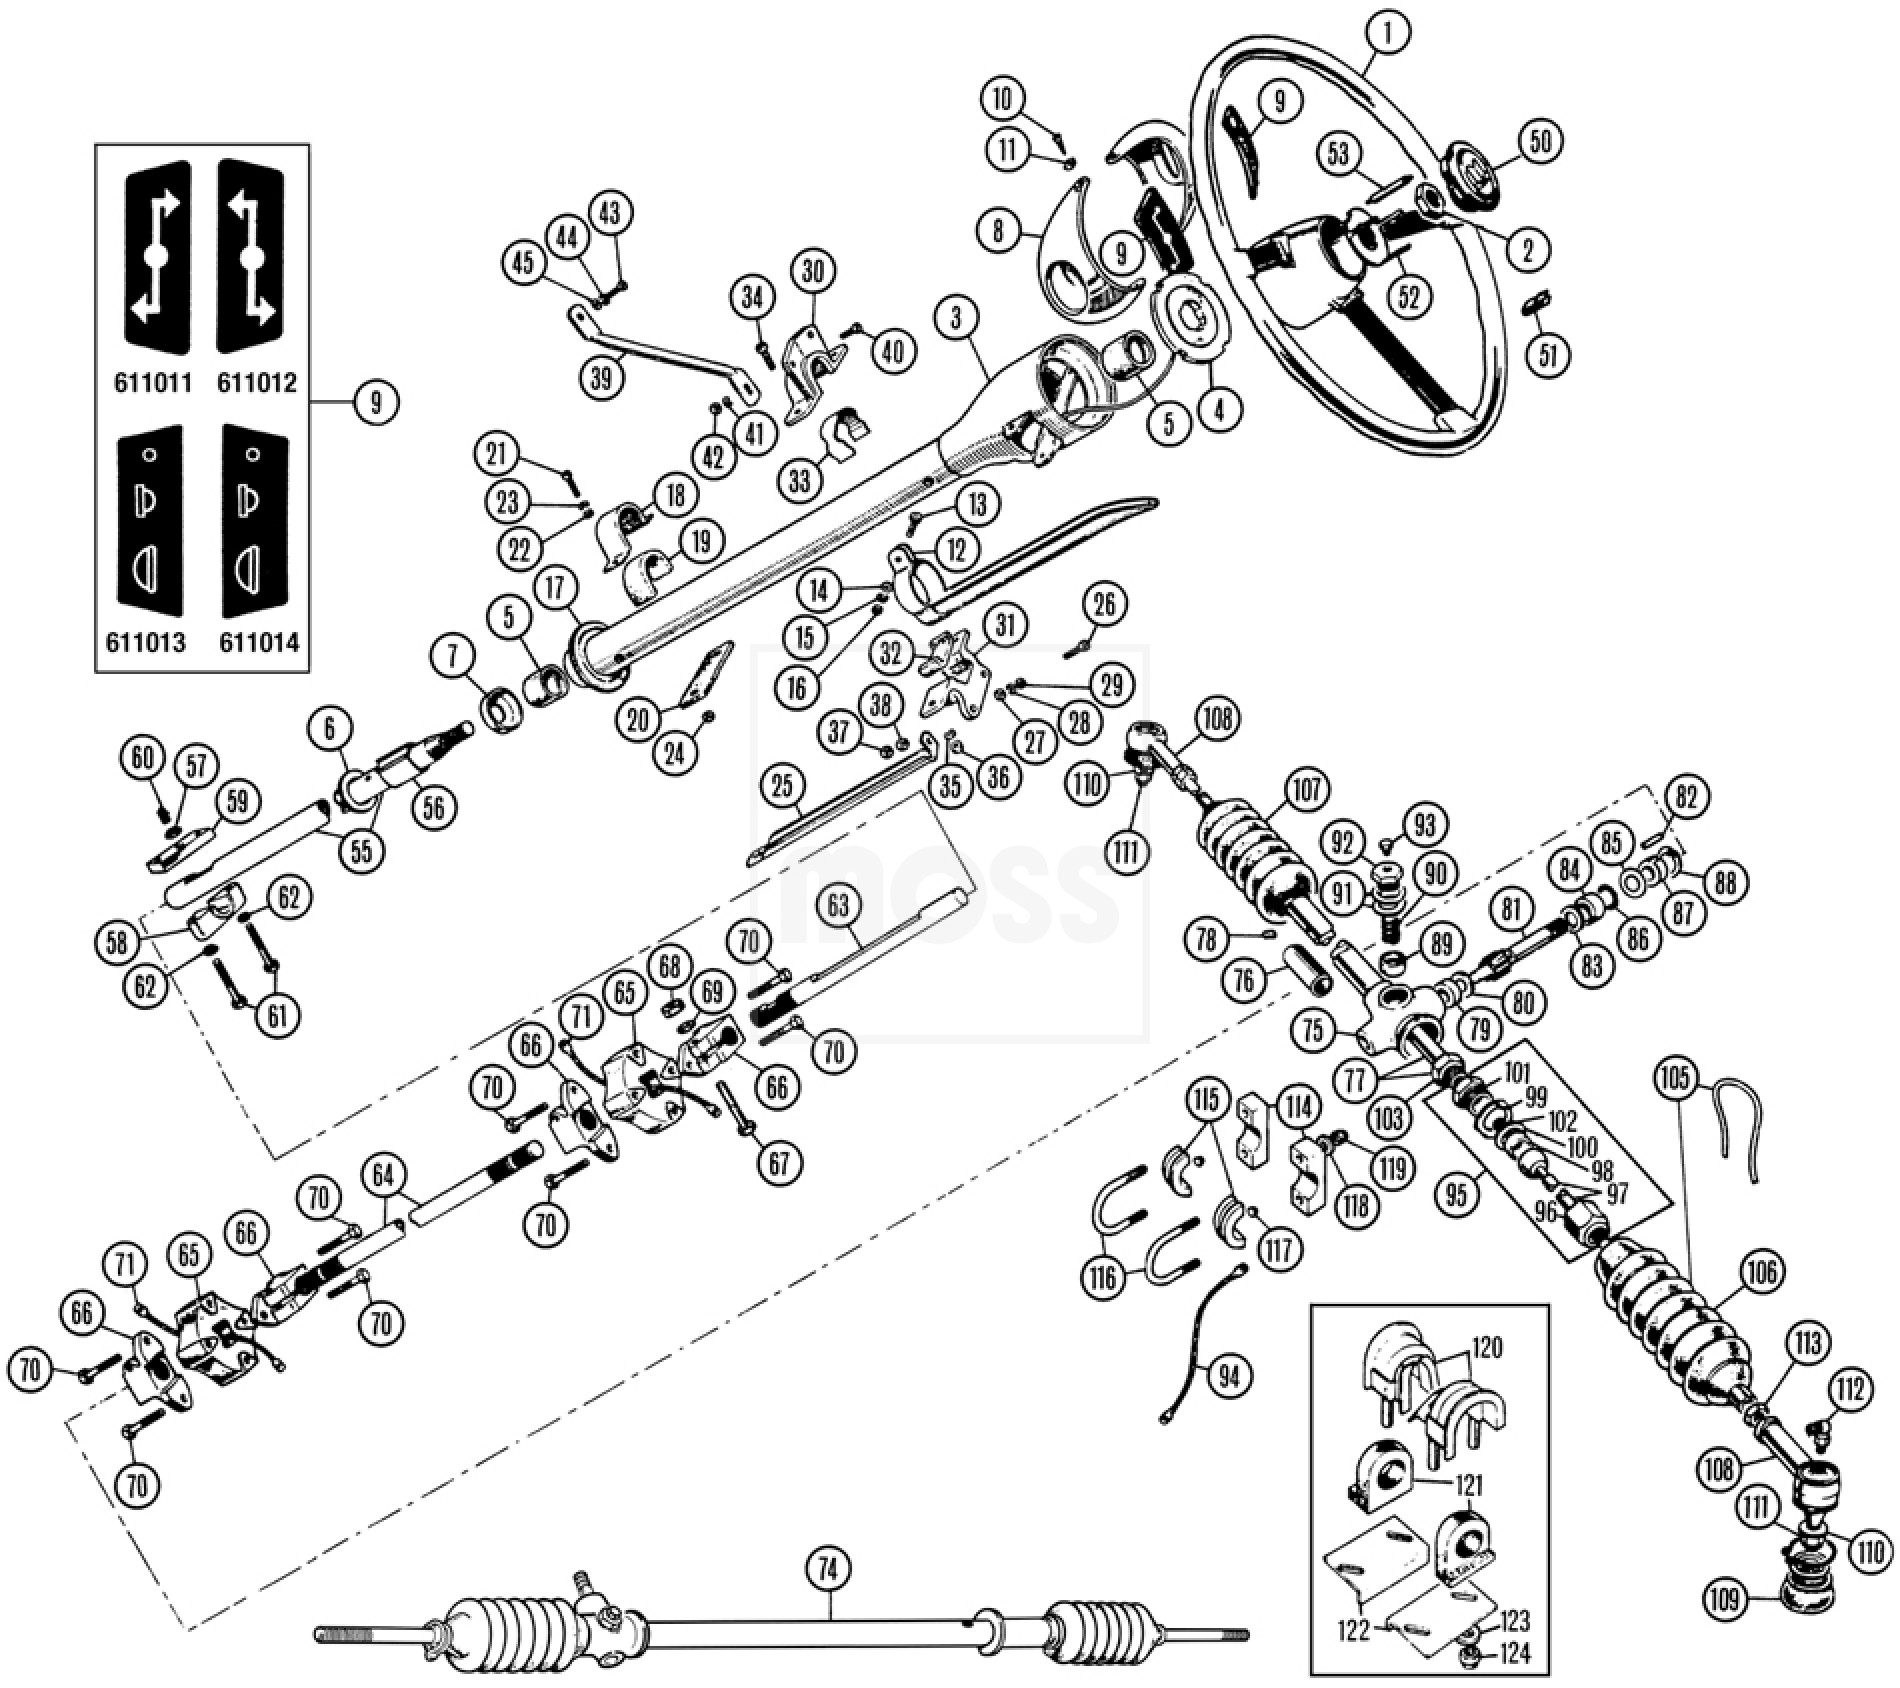 Coloriage Voiture Mustang besides Oil Accumulators furthermore Category path 330 344 255 sort rating order desc page 2 additionally 2006 Hummer H3 Parts Diagrams besides Steering Rack Column Wheel Tr4 4a. on mg midget